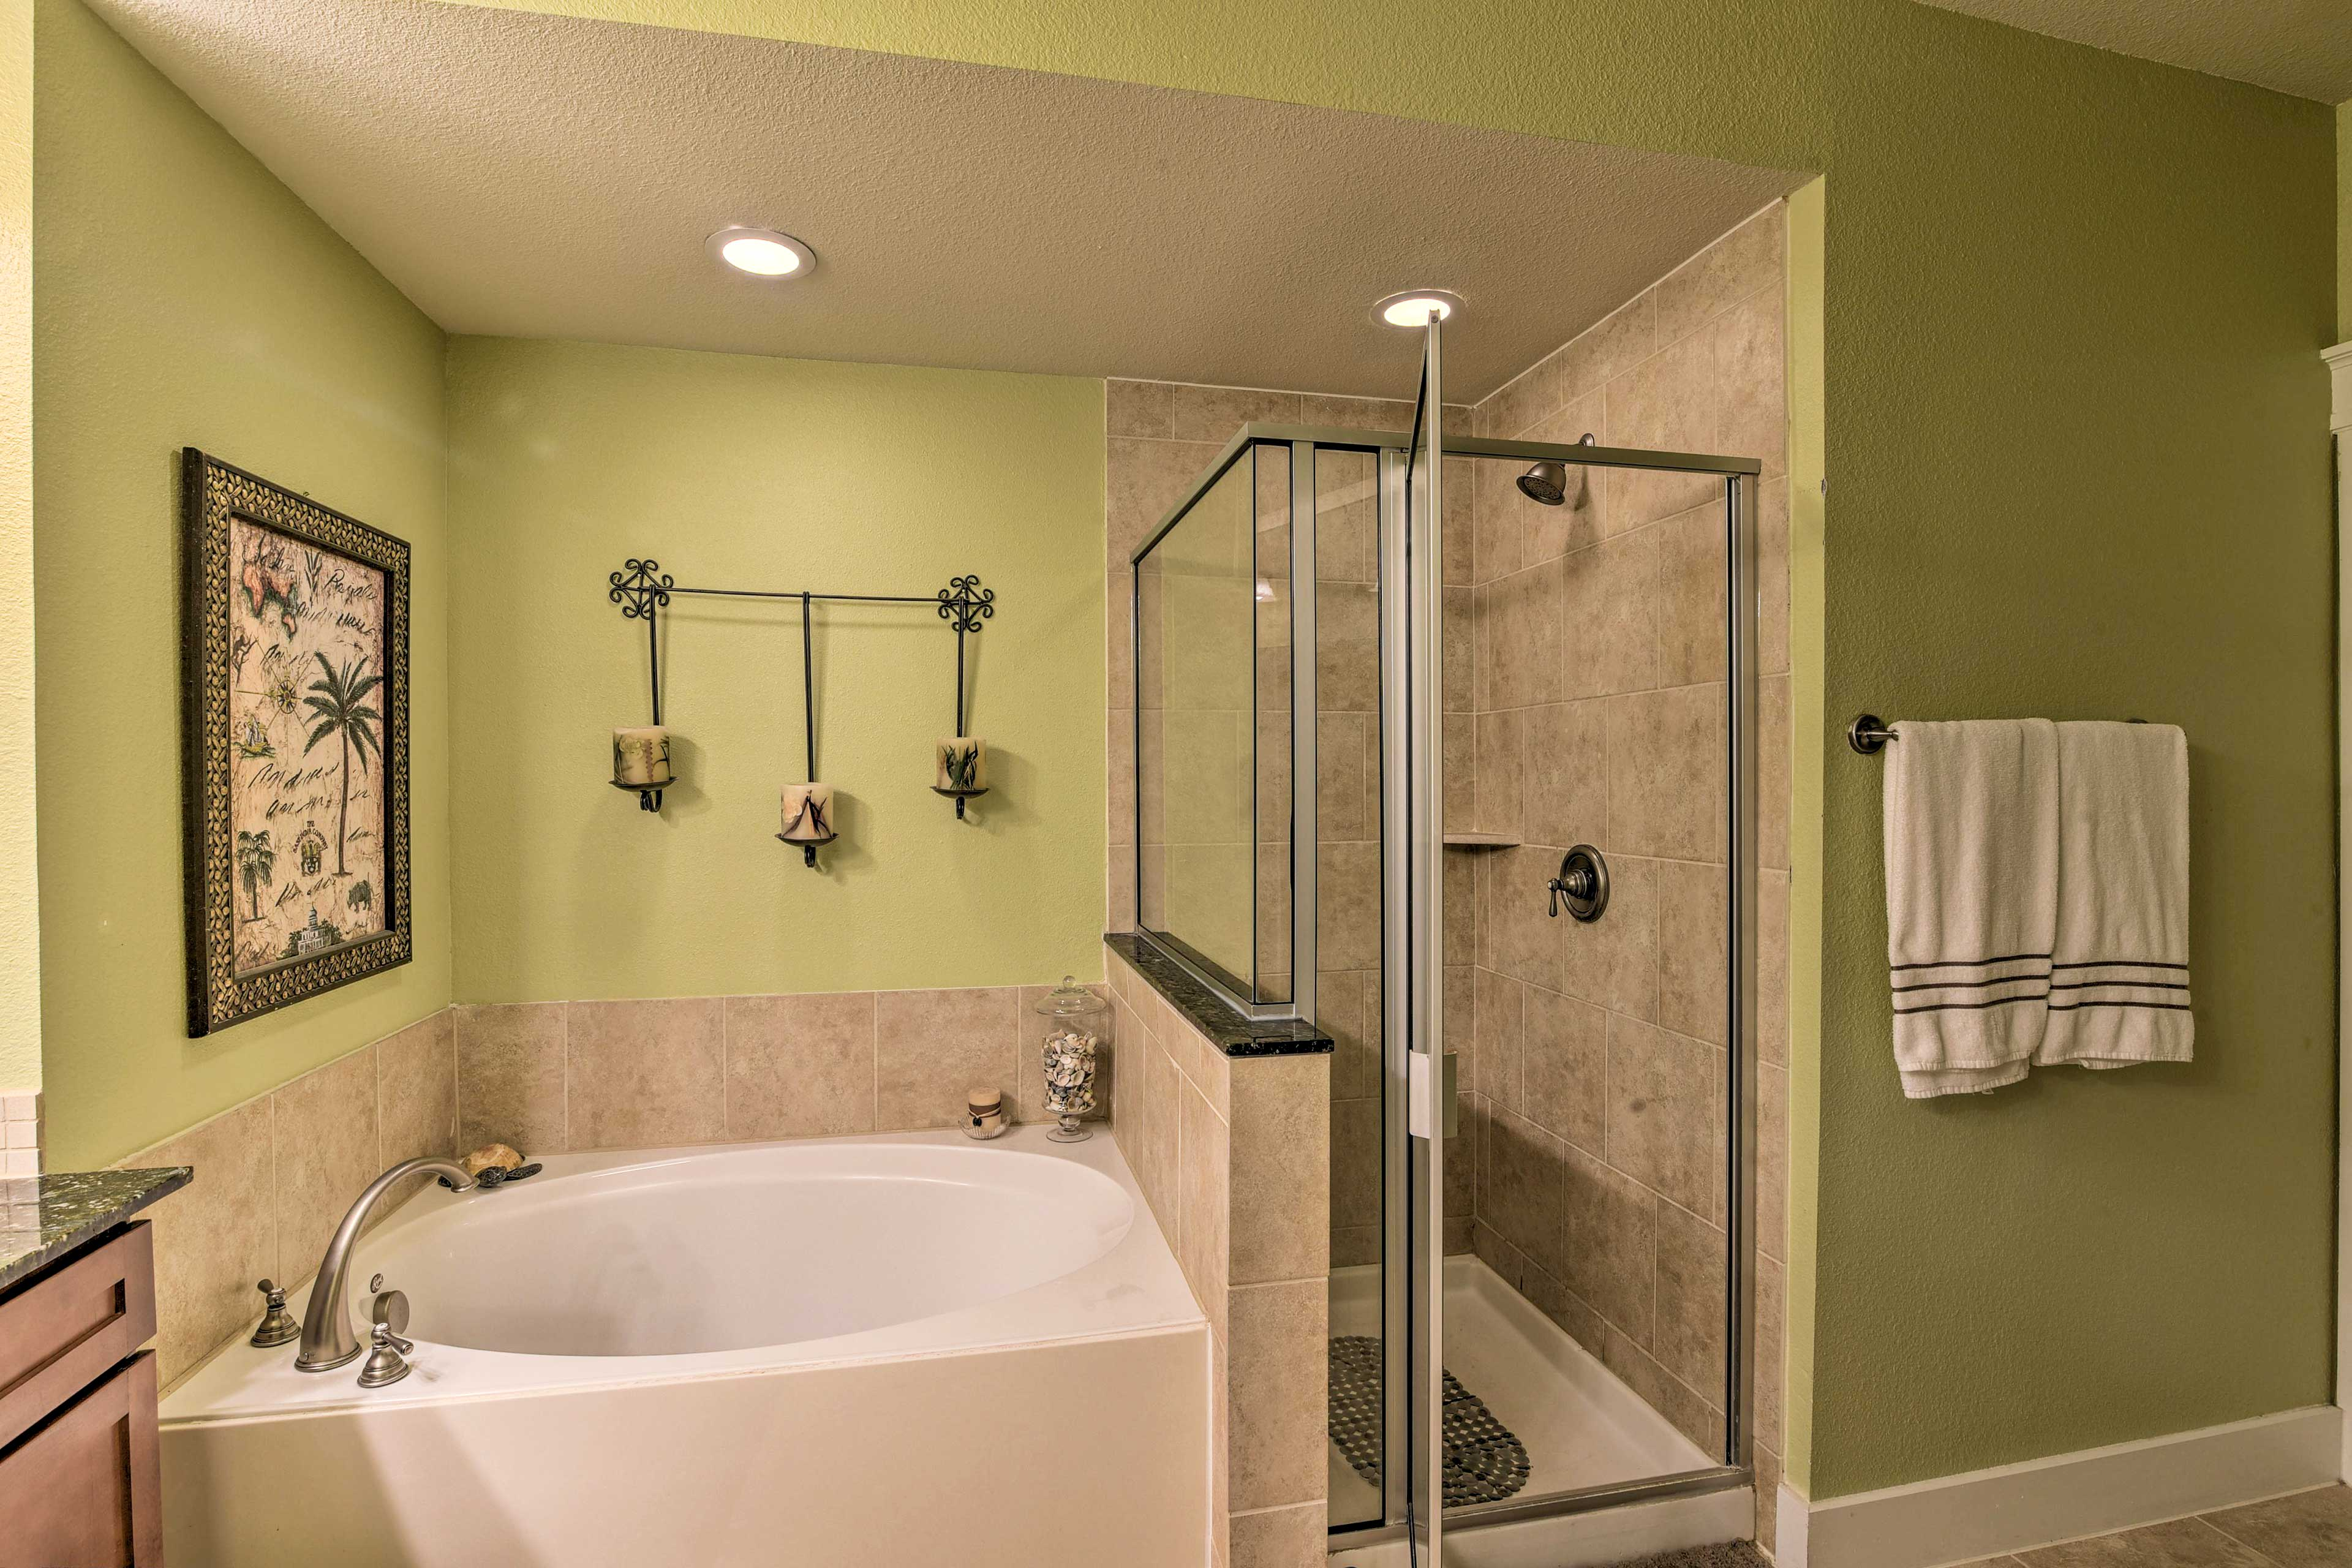 Take a relaxing rinse in the walk-in shower or soothing soak in the tub.